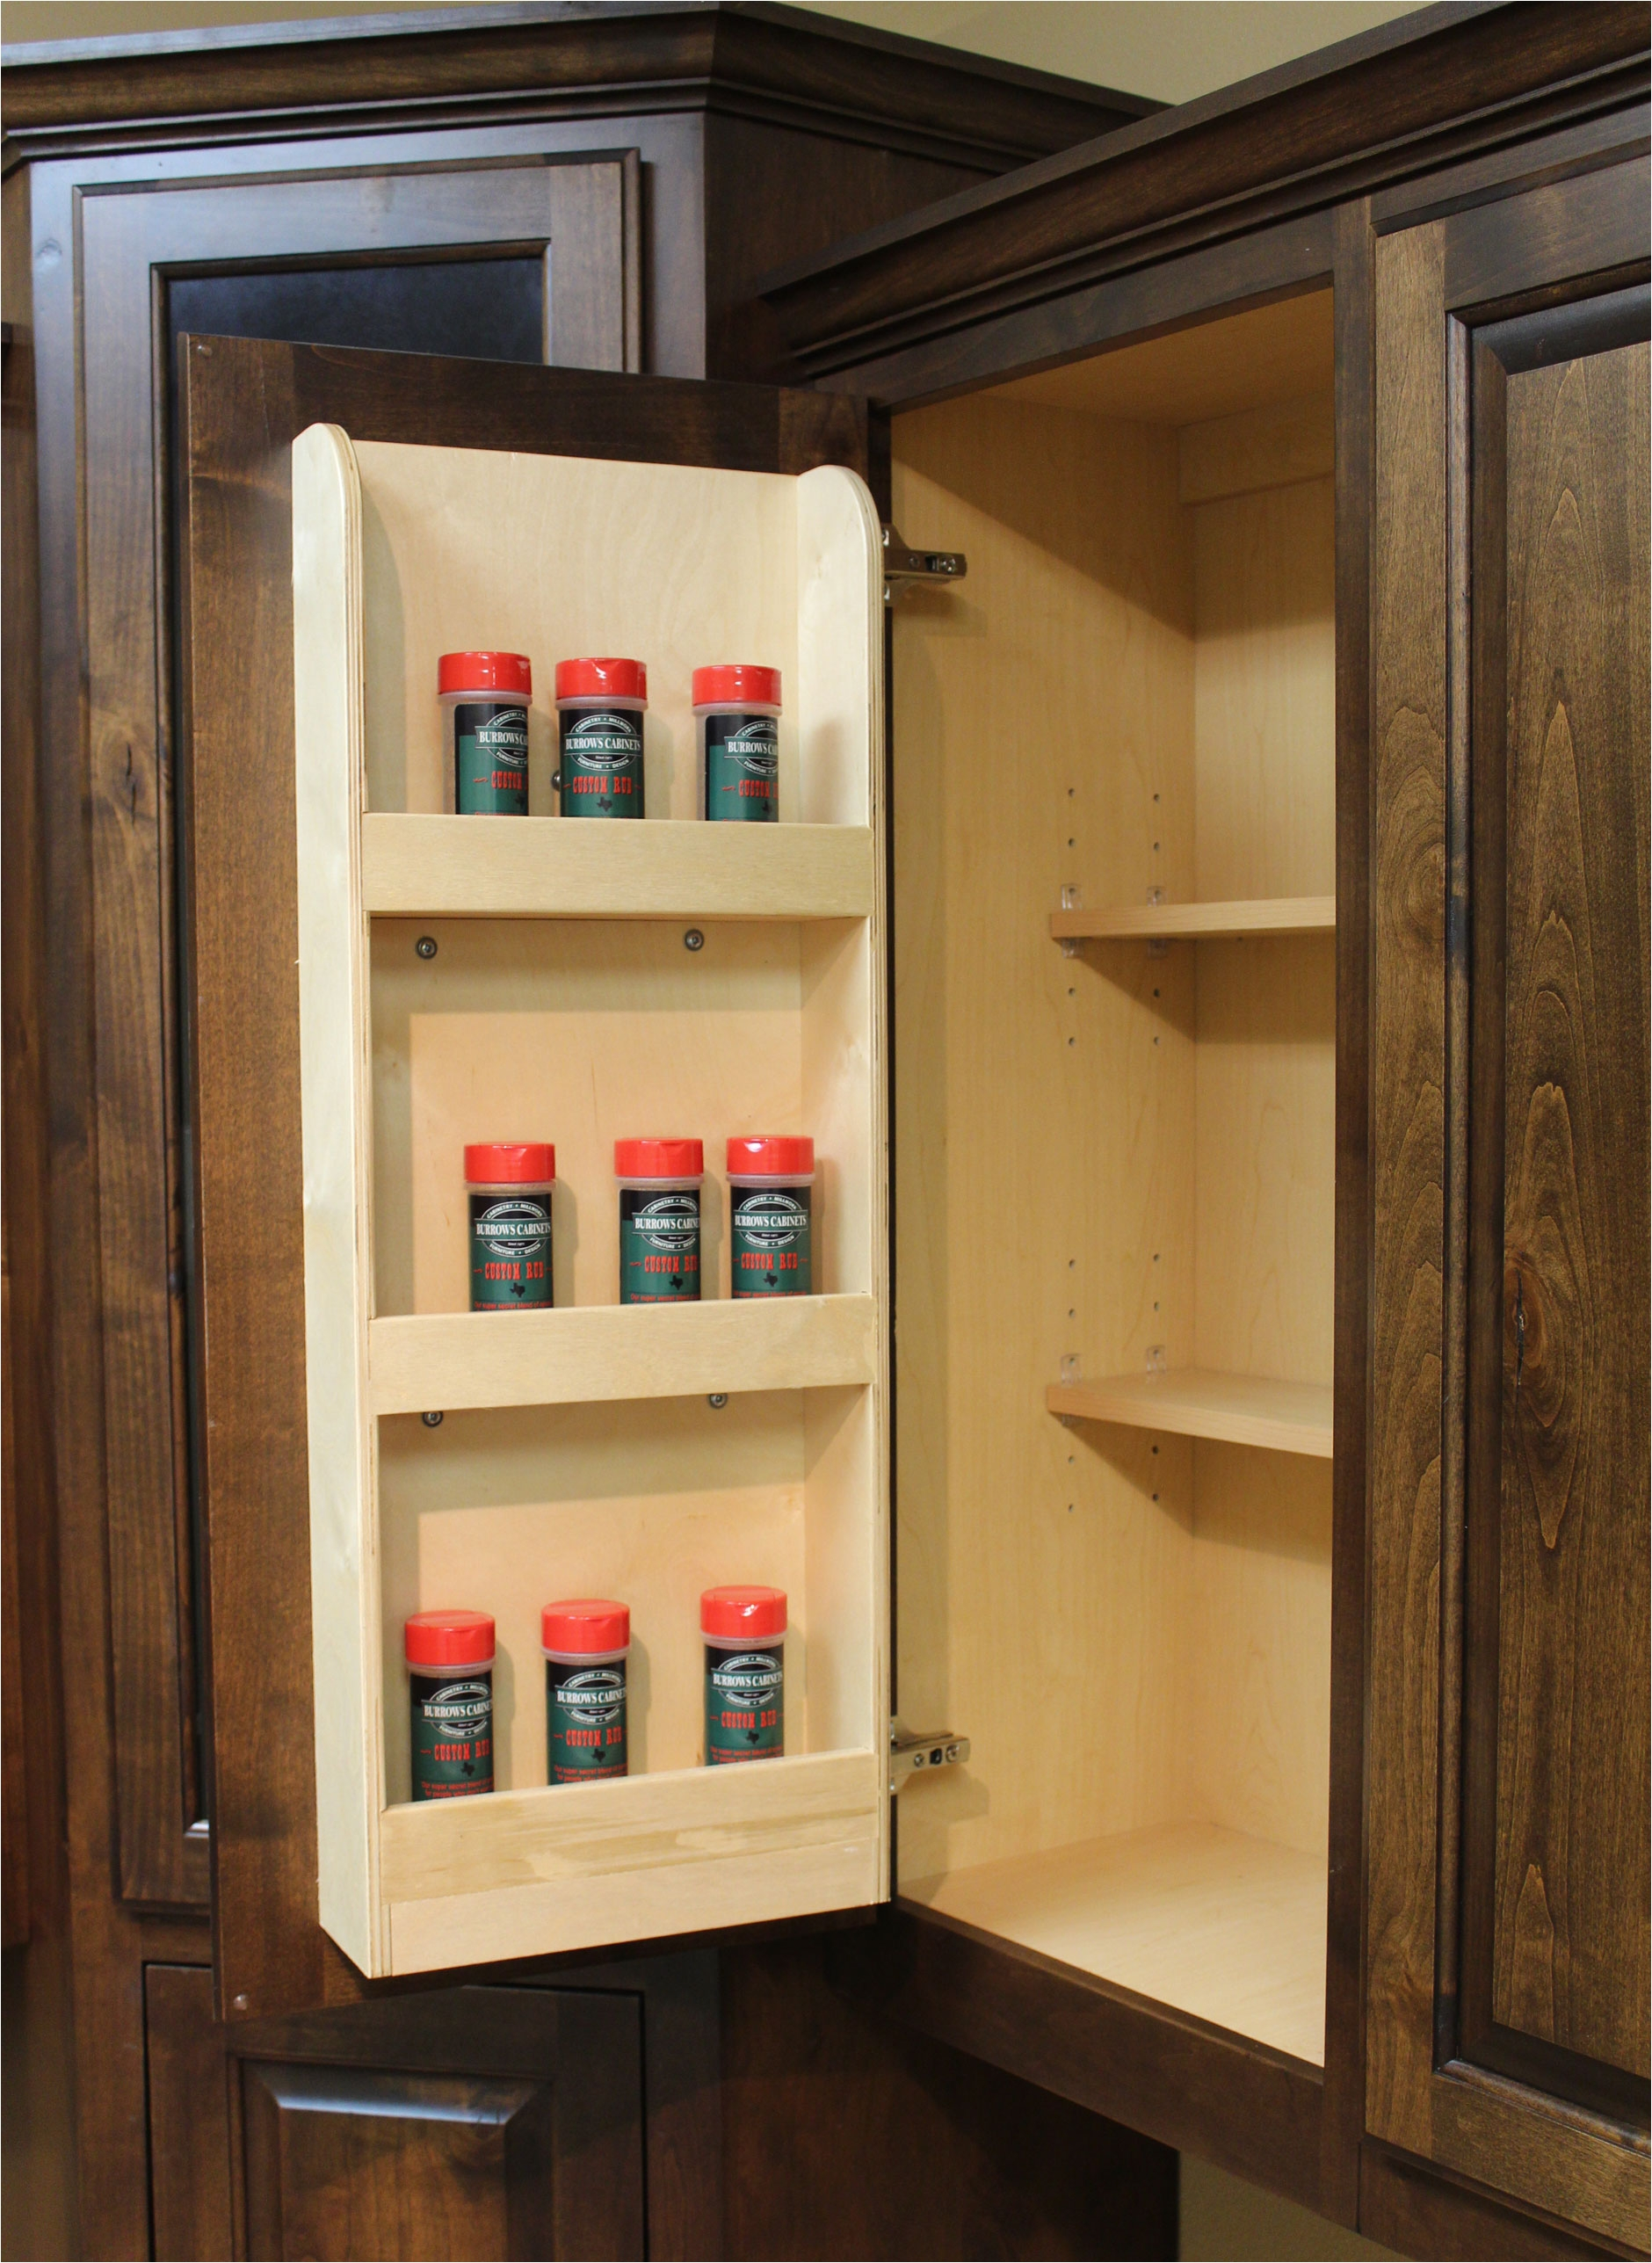 lowes storage ideas ikea pantry pantry door spice rack diy pantry